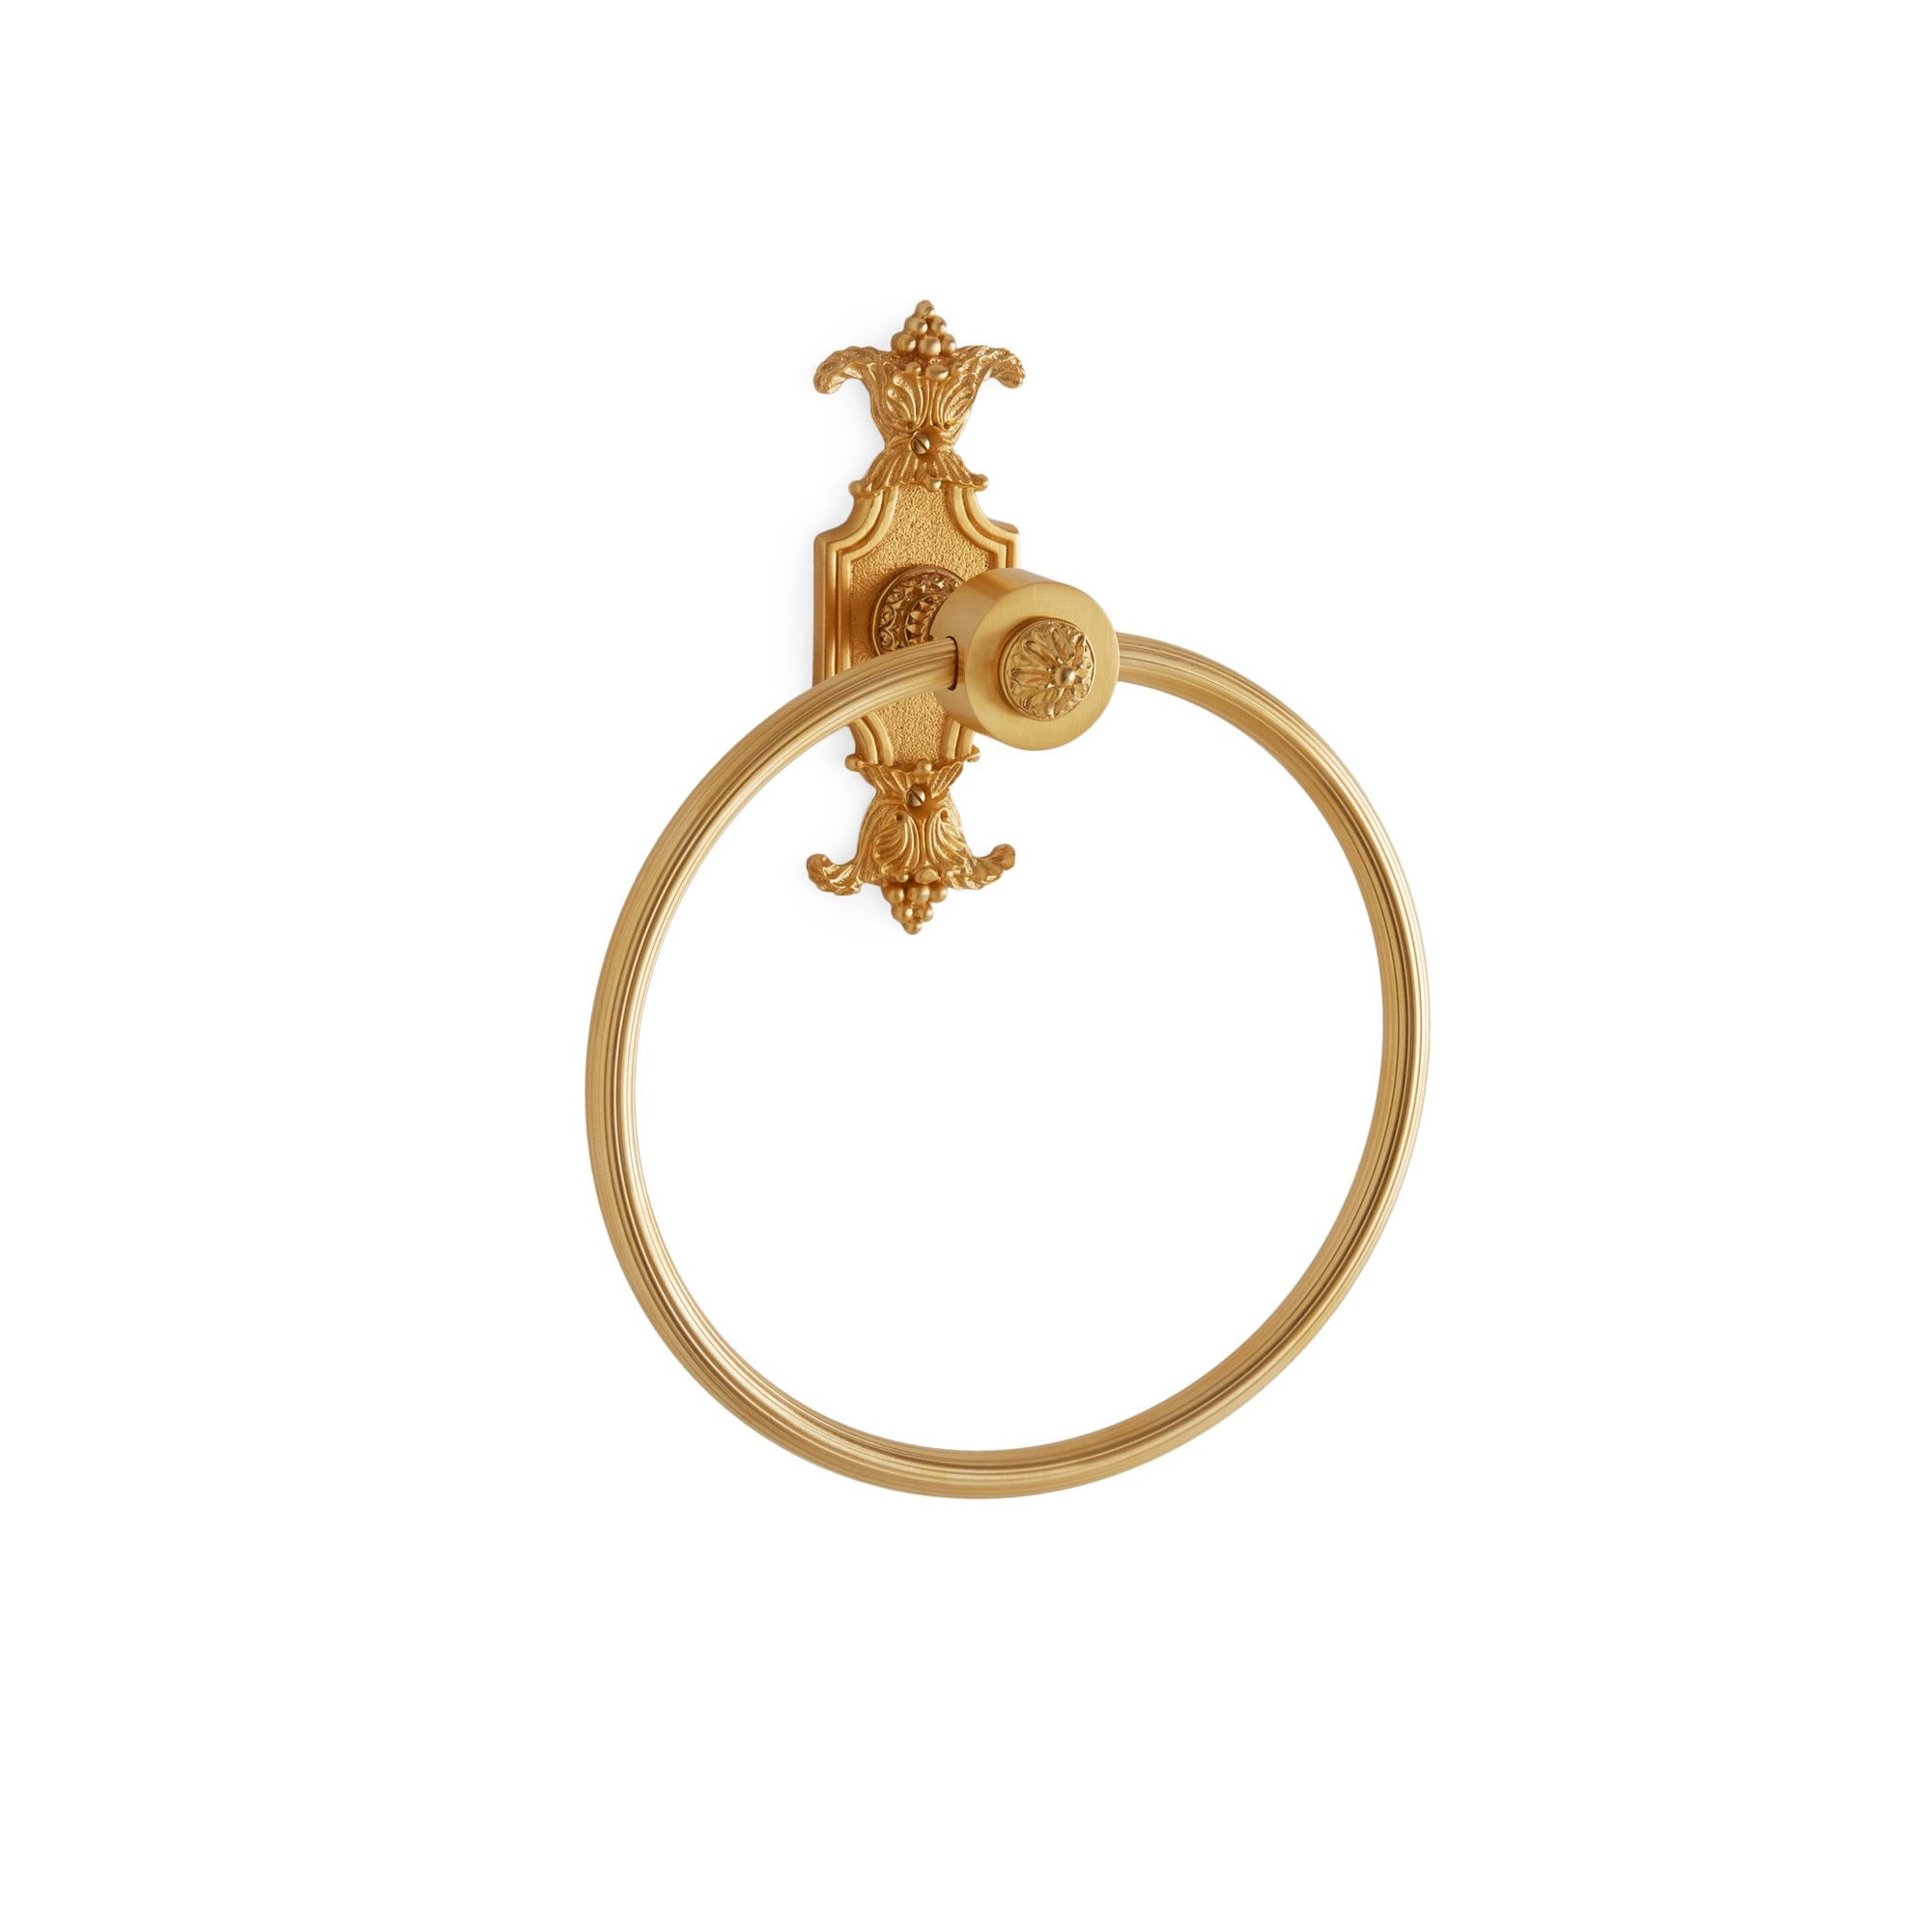 3428-GP Sherle Wagner International Louis XVI Towel Ring in Gold Plate metal finish